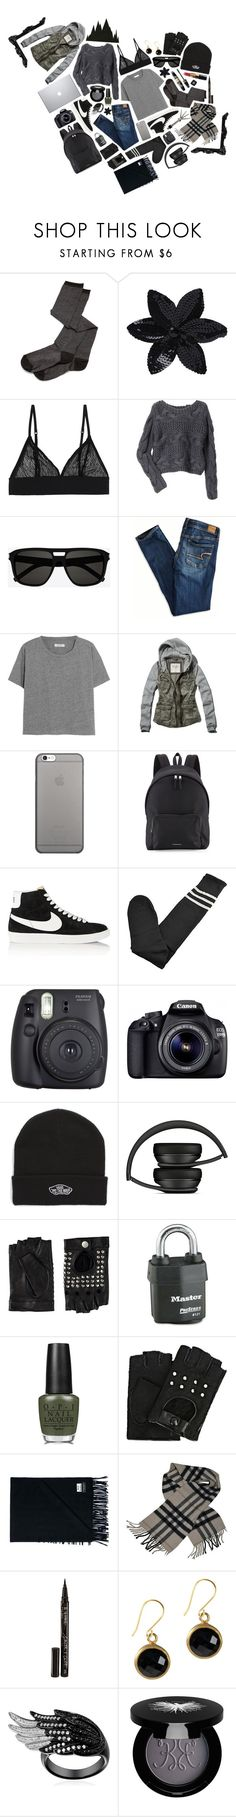 """""""You will never see me cry. My sadness runs deep but my heart is still pure. // Everyday 1 // Ezekiel Jones // The Librarians"""" by saffire9975 ❤ liked on Polyvore featuring Rabens Saloner, ASOS, Monki, sass & bide, Yves Saint Laurent, American Eagle Outfitters, Madewell, Abercrombie & Fitch, Native Union and Burberry"""